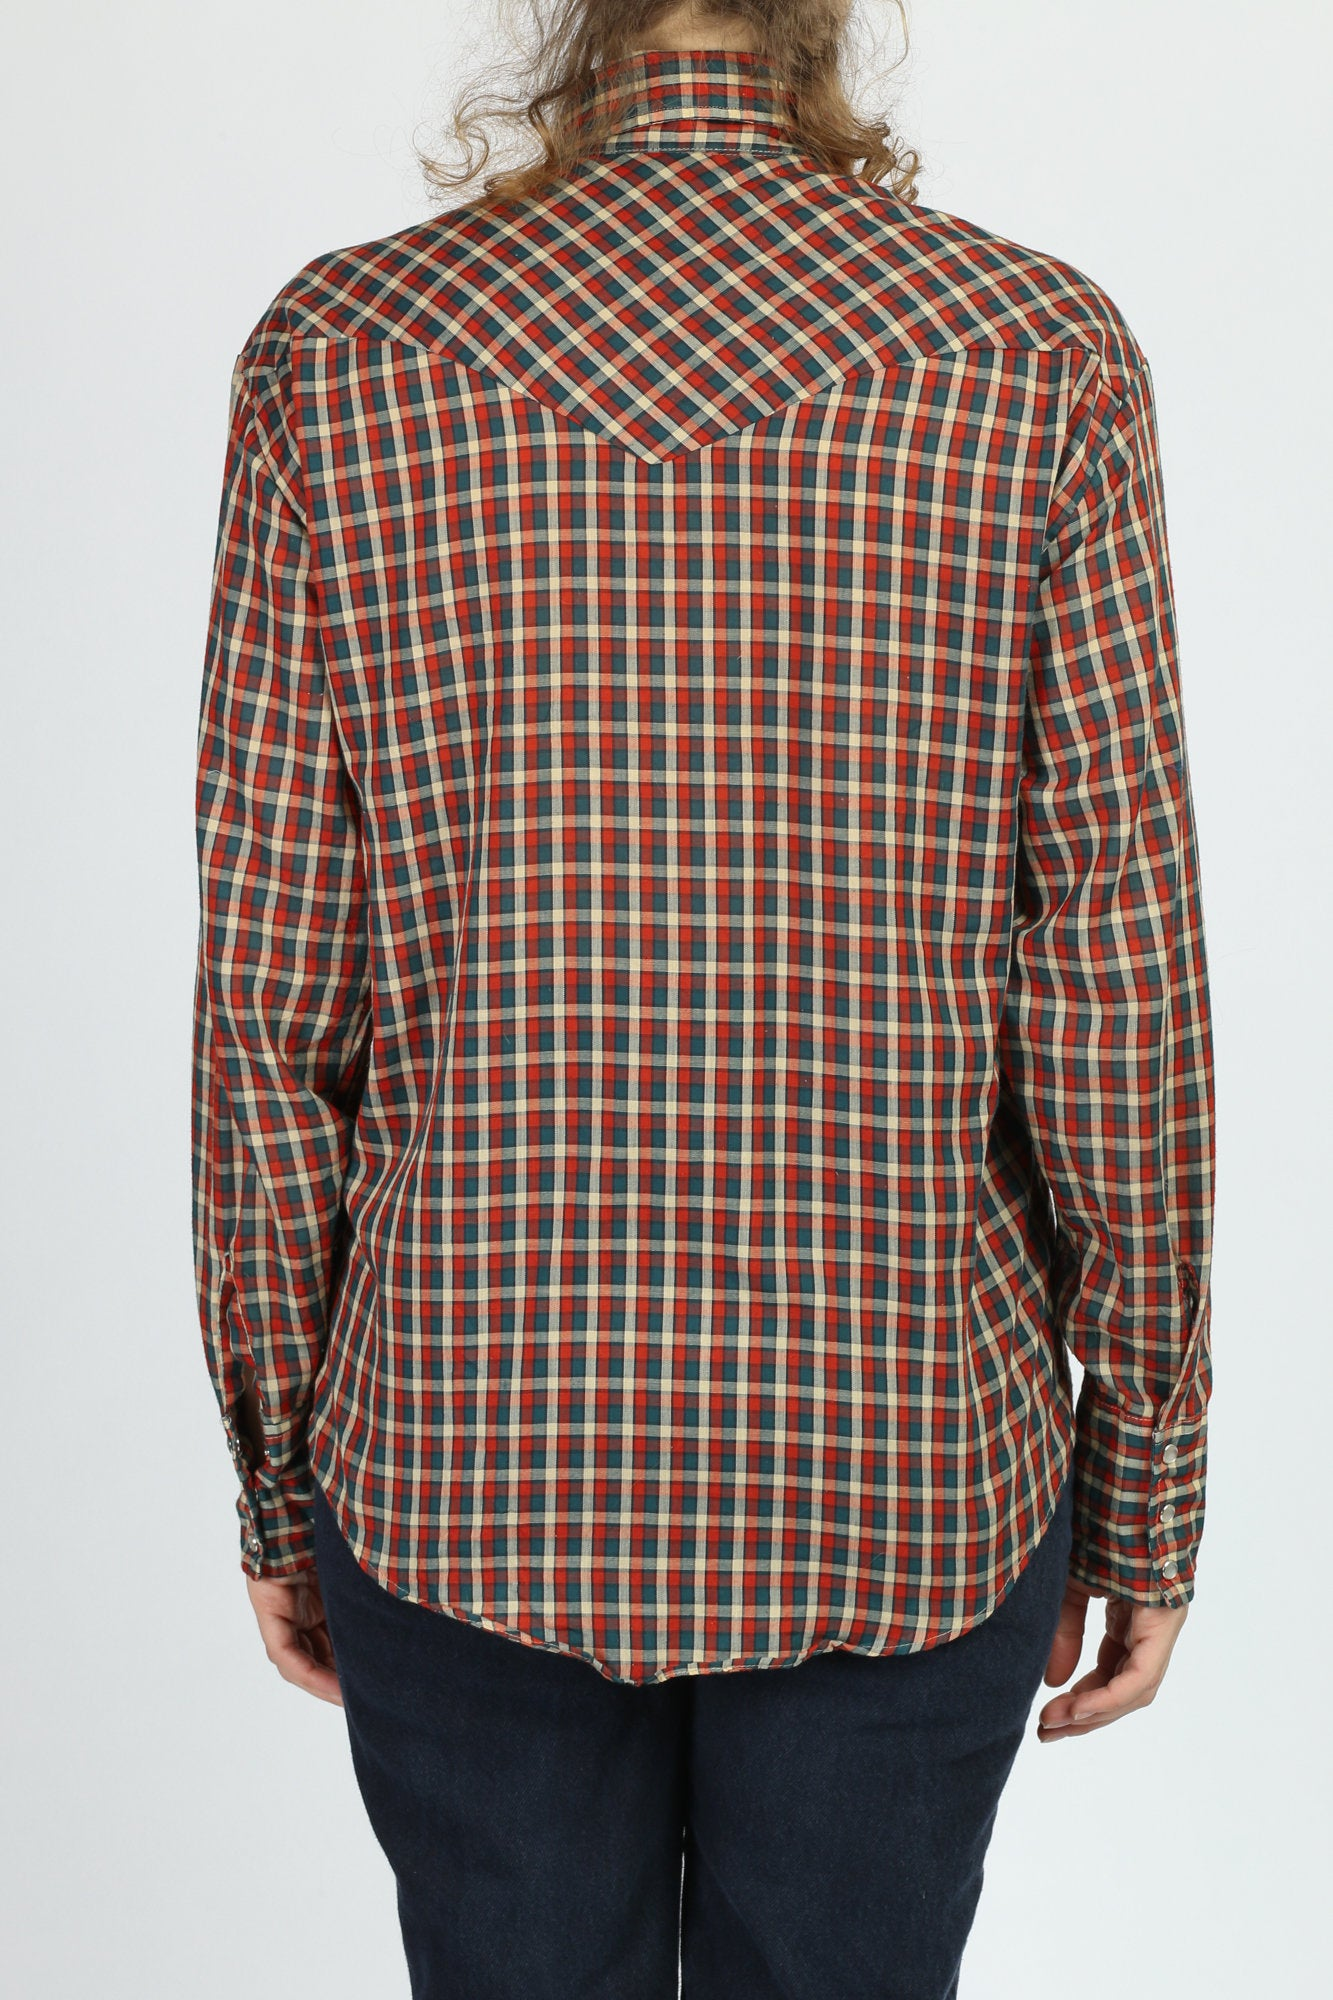 70s Plaid Pearl Snap Western Shirt - Men's Medium